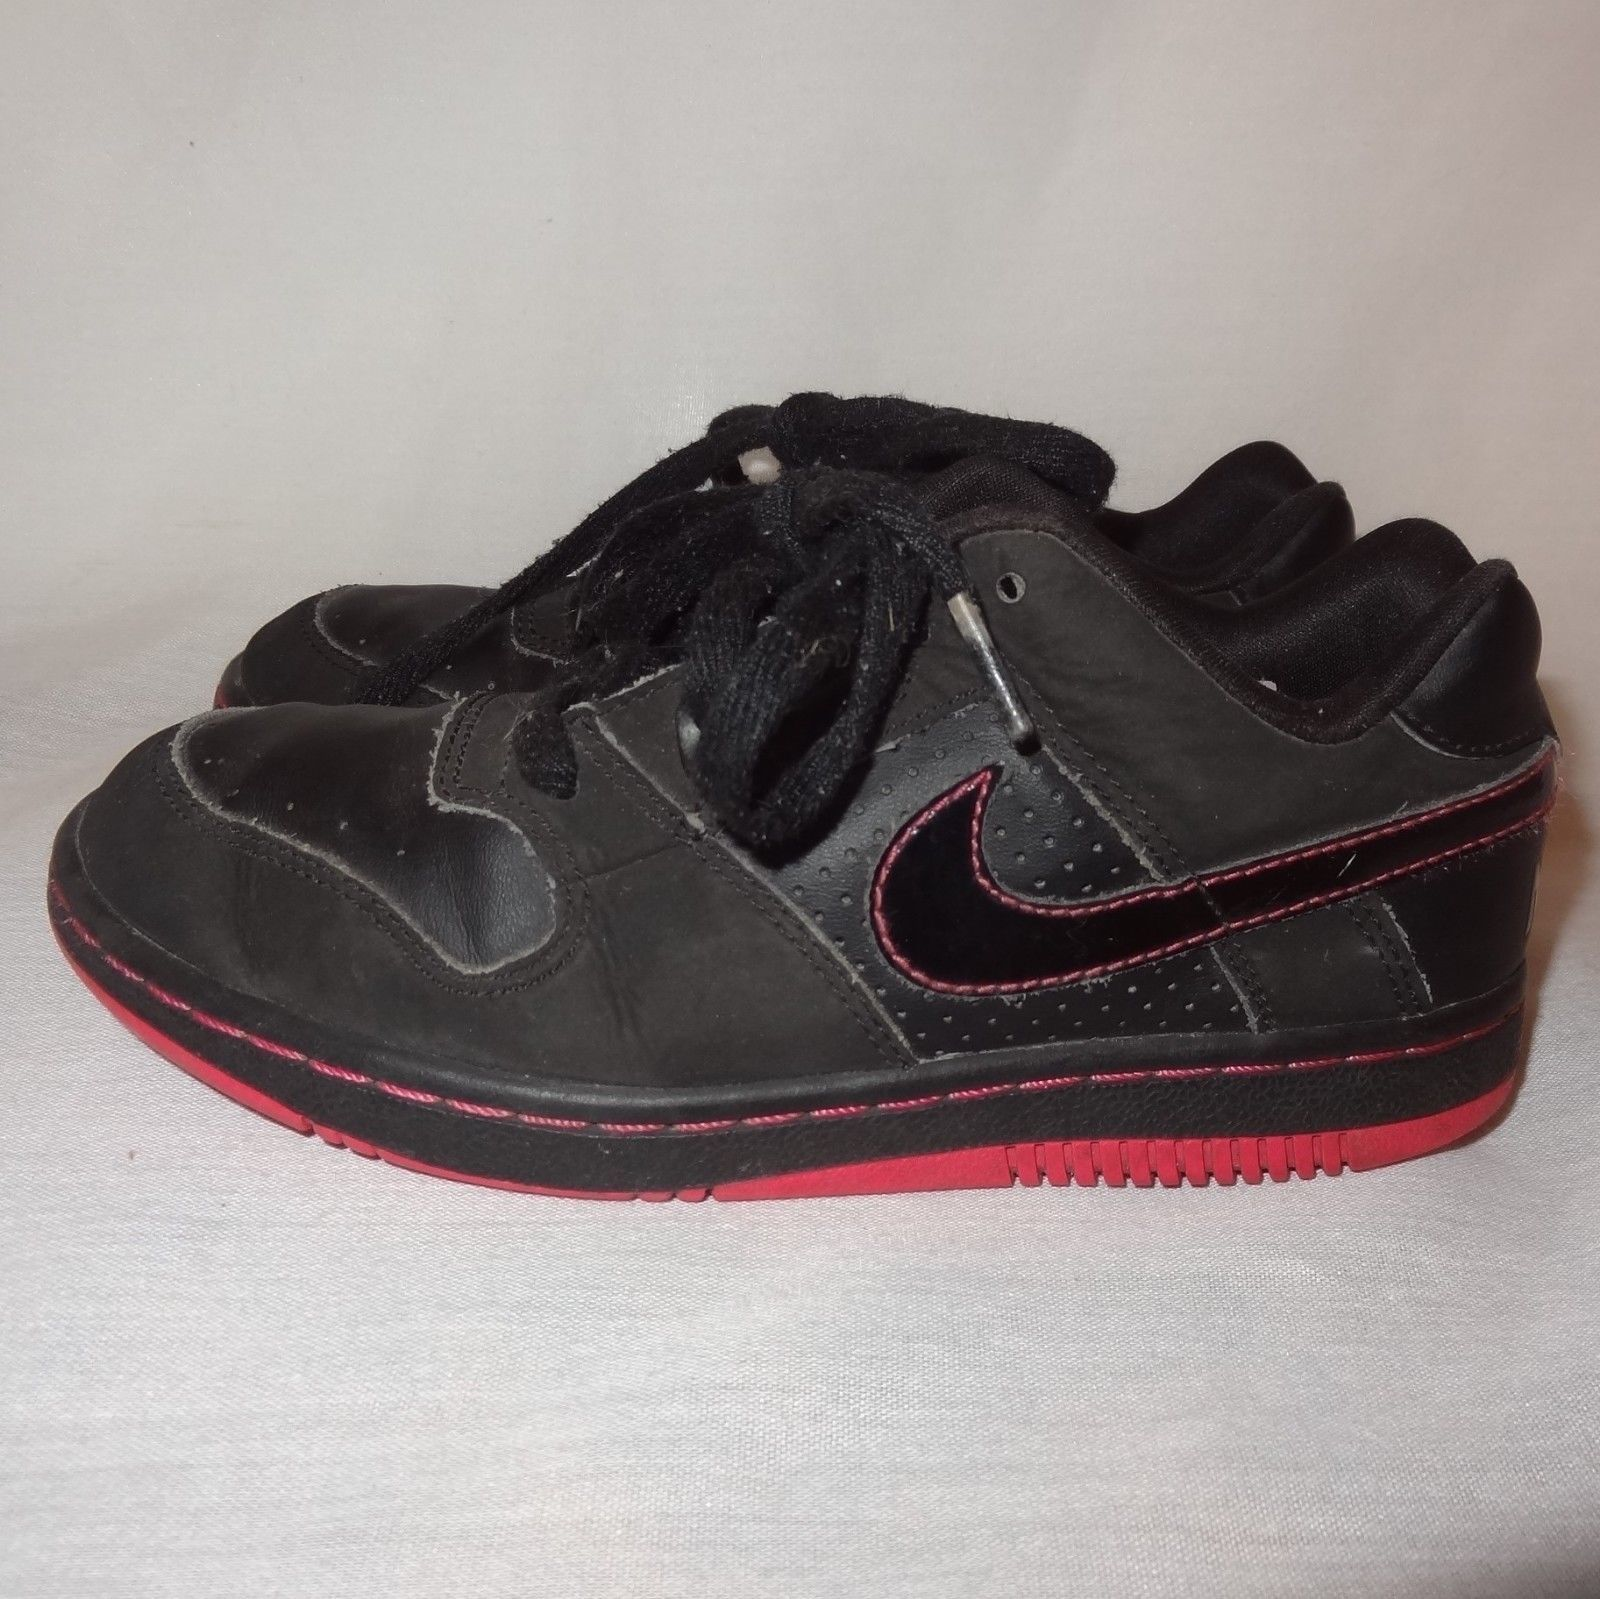 Nike Black Athletic Shoes Size 2Y Girls and 23 similar items